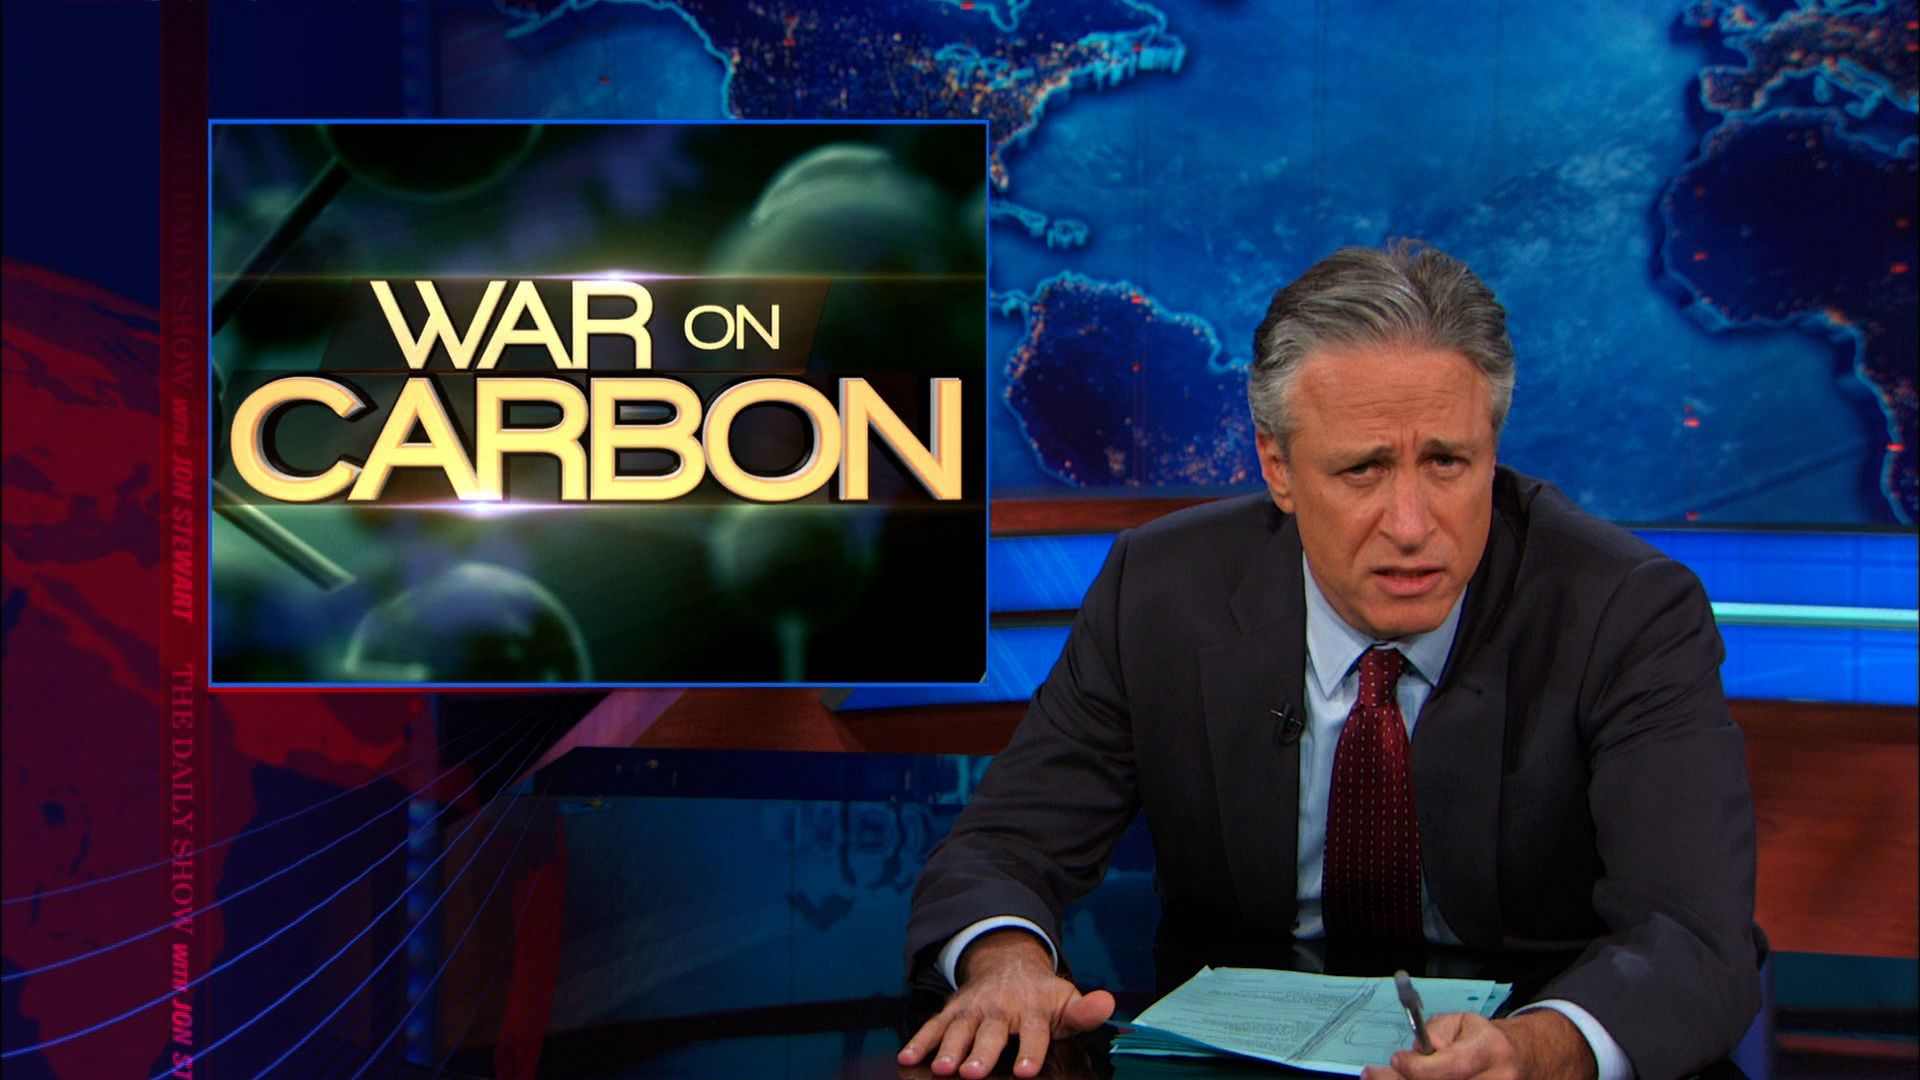 War on Carbon - The Daily Show with Jon Stewart (Video Clip ...